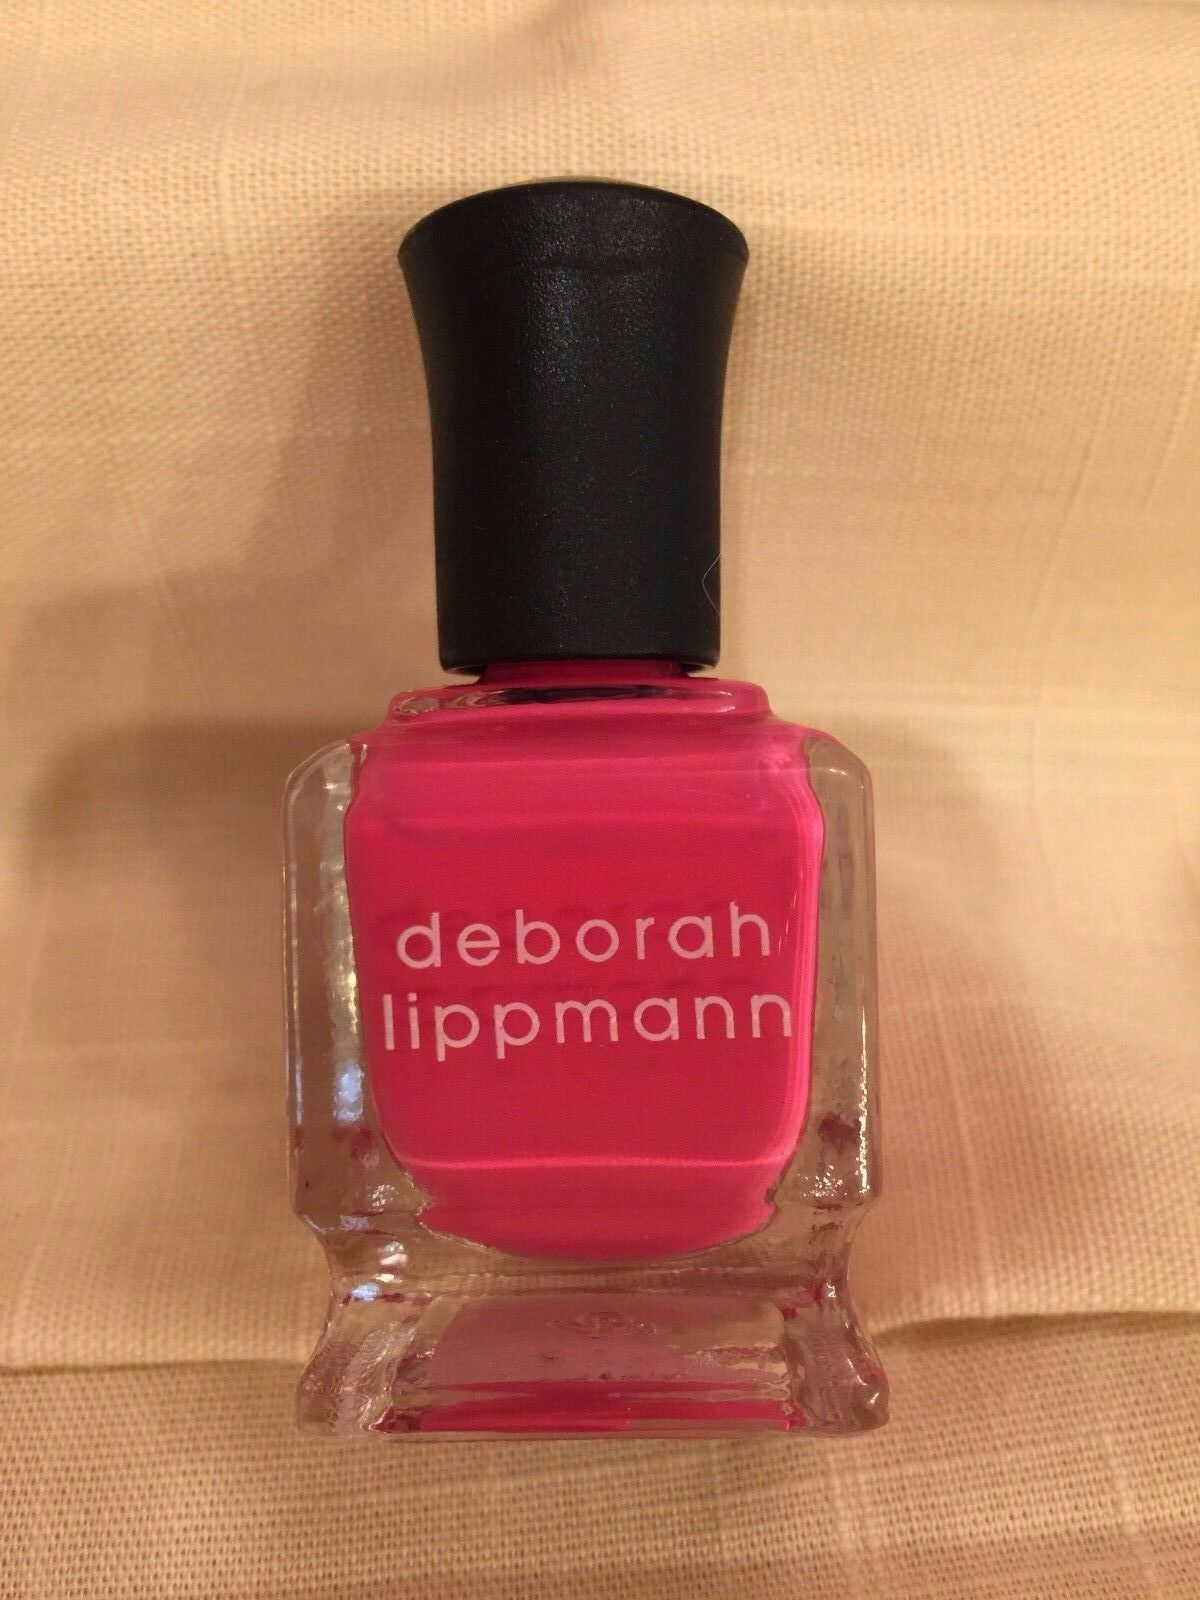 Deborah Lippmann Nail Lacquer - Crush on You | eBay